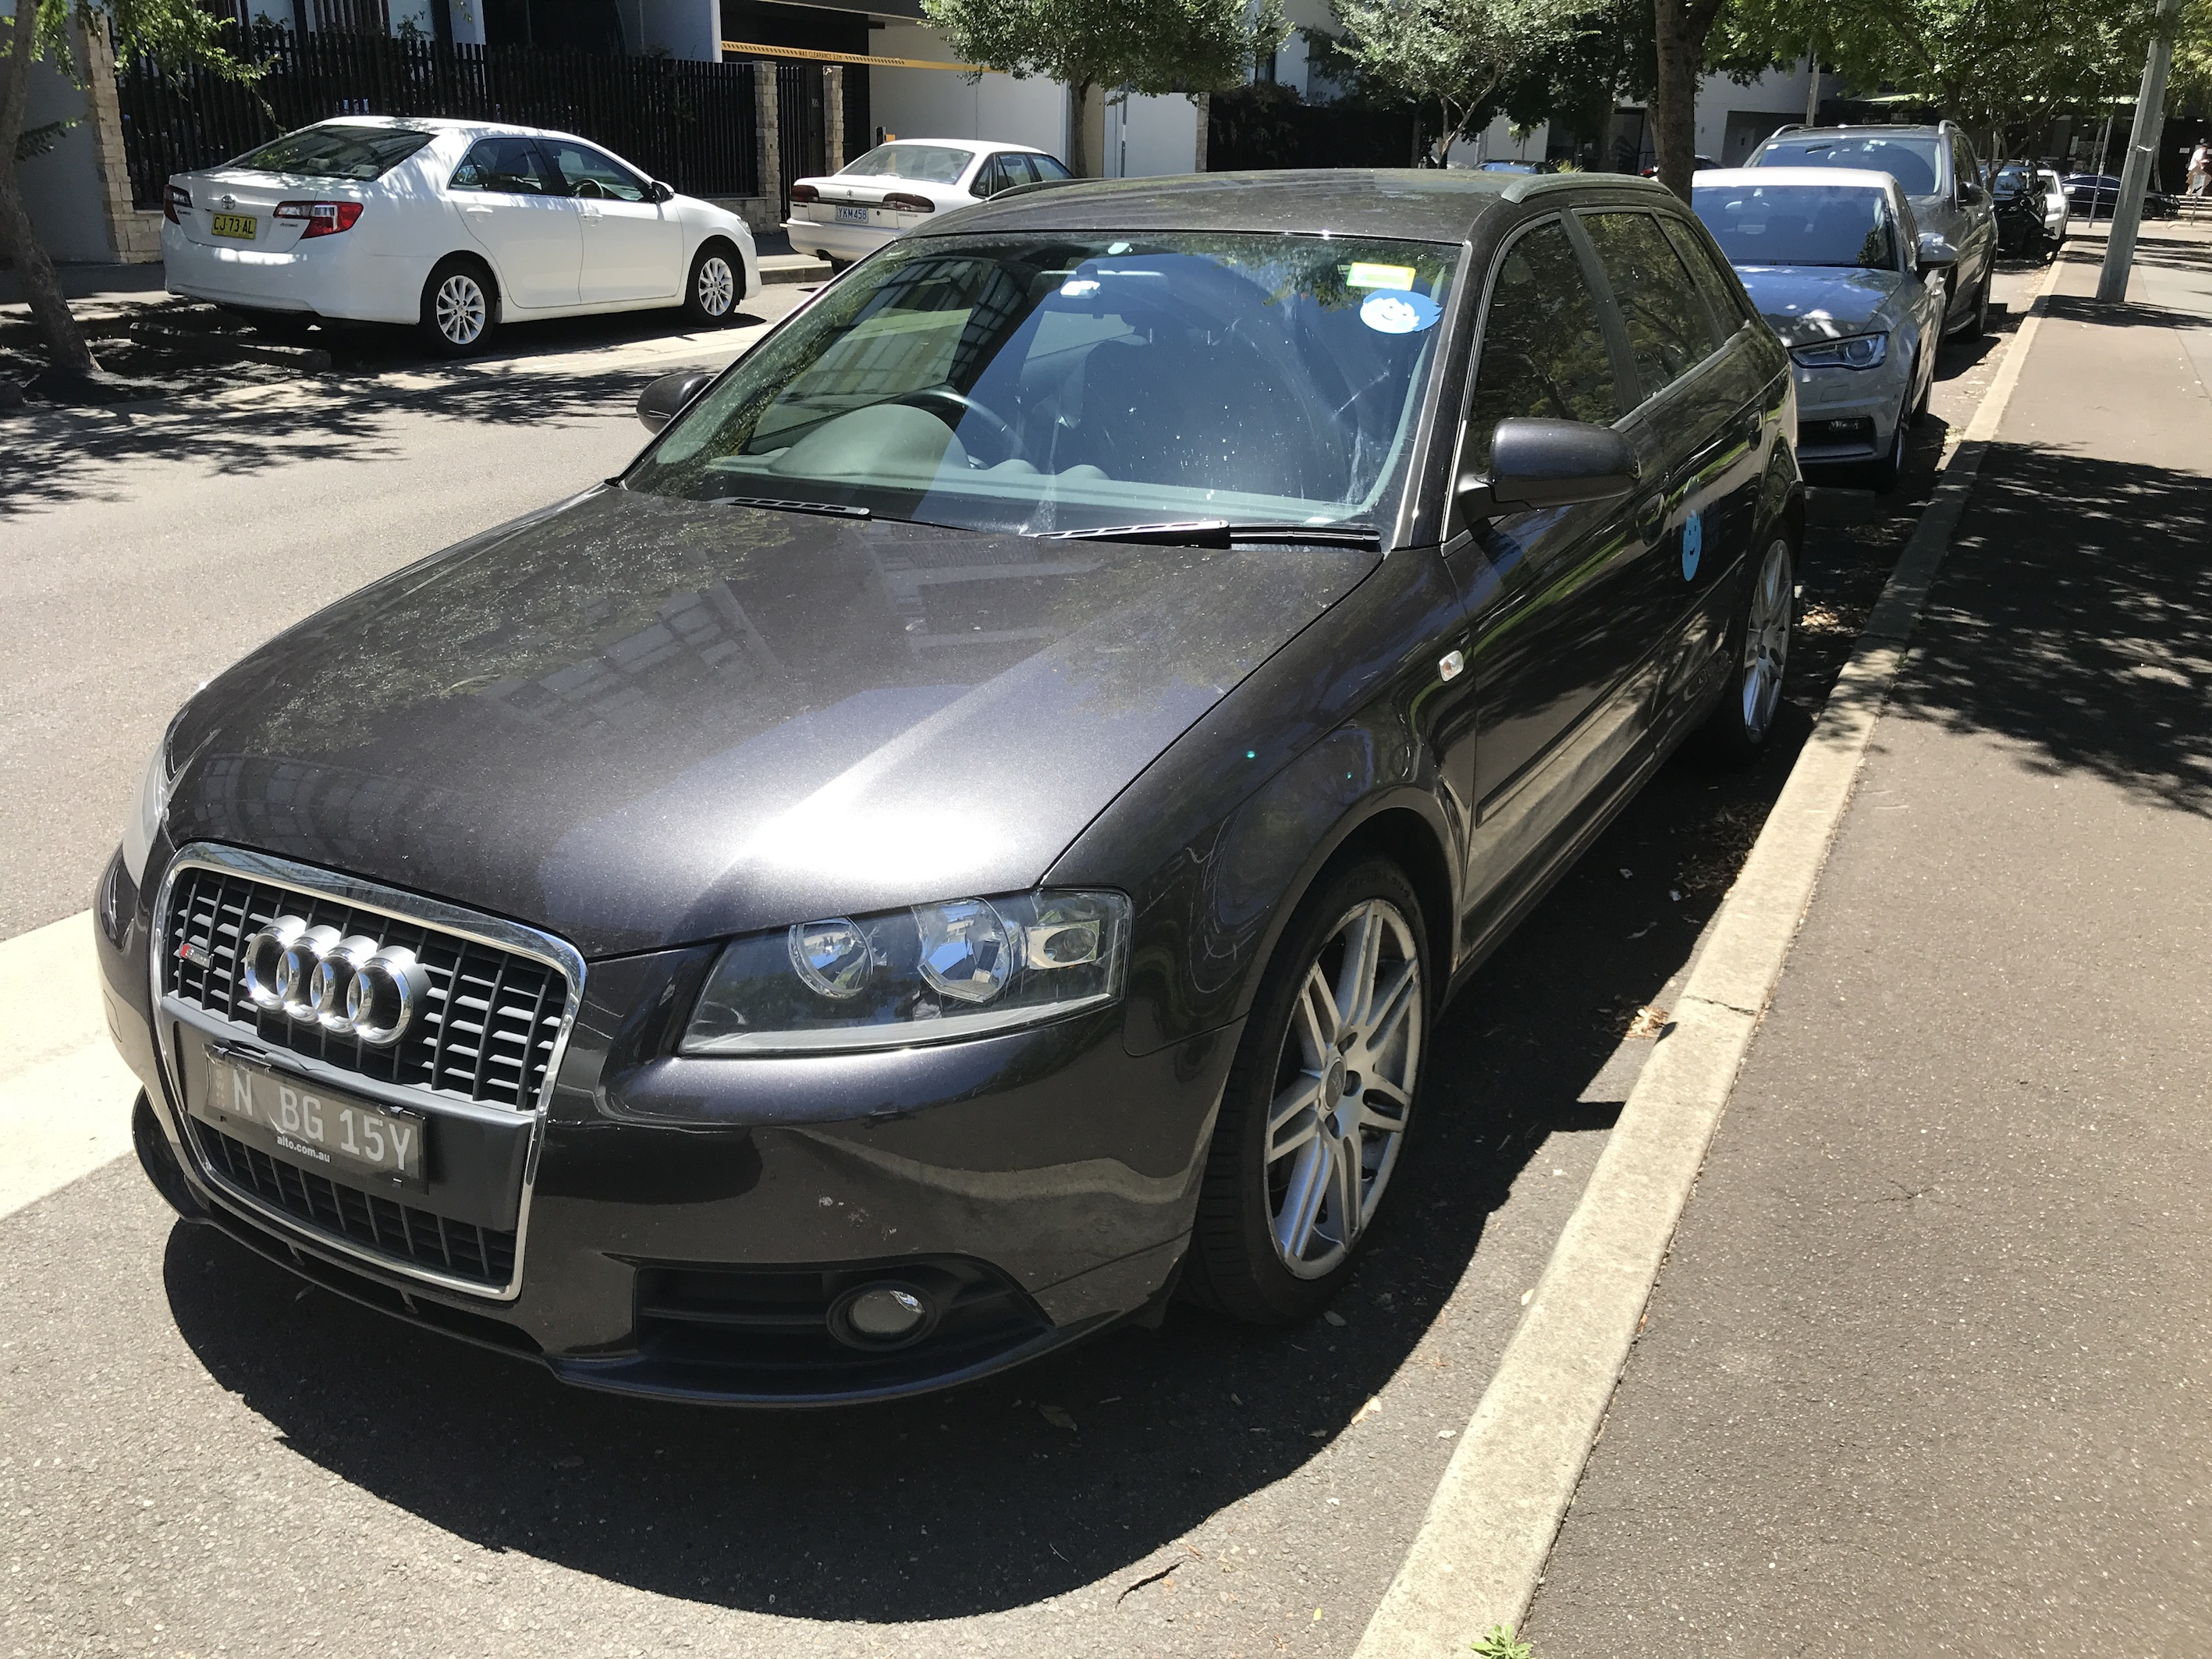 Picture of Helena's 2008 Audi A3